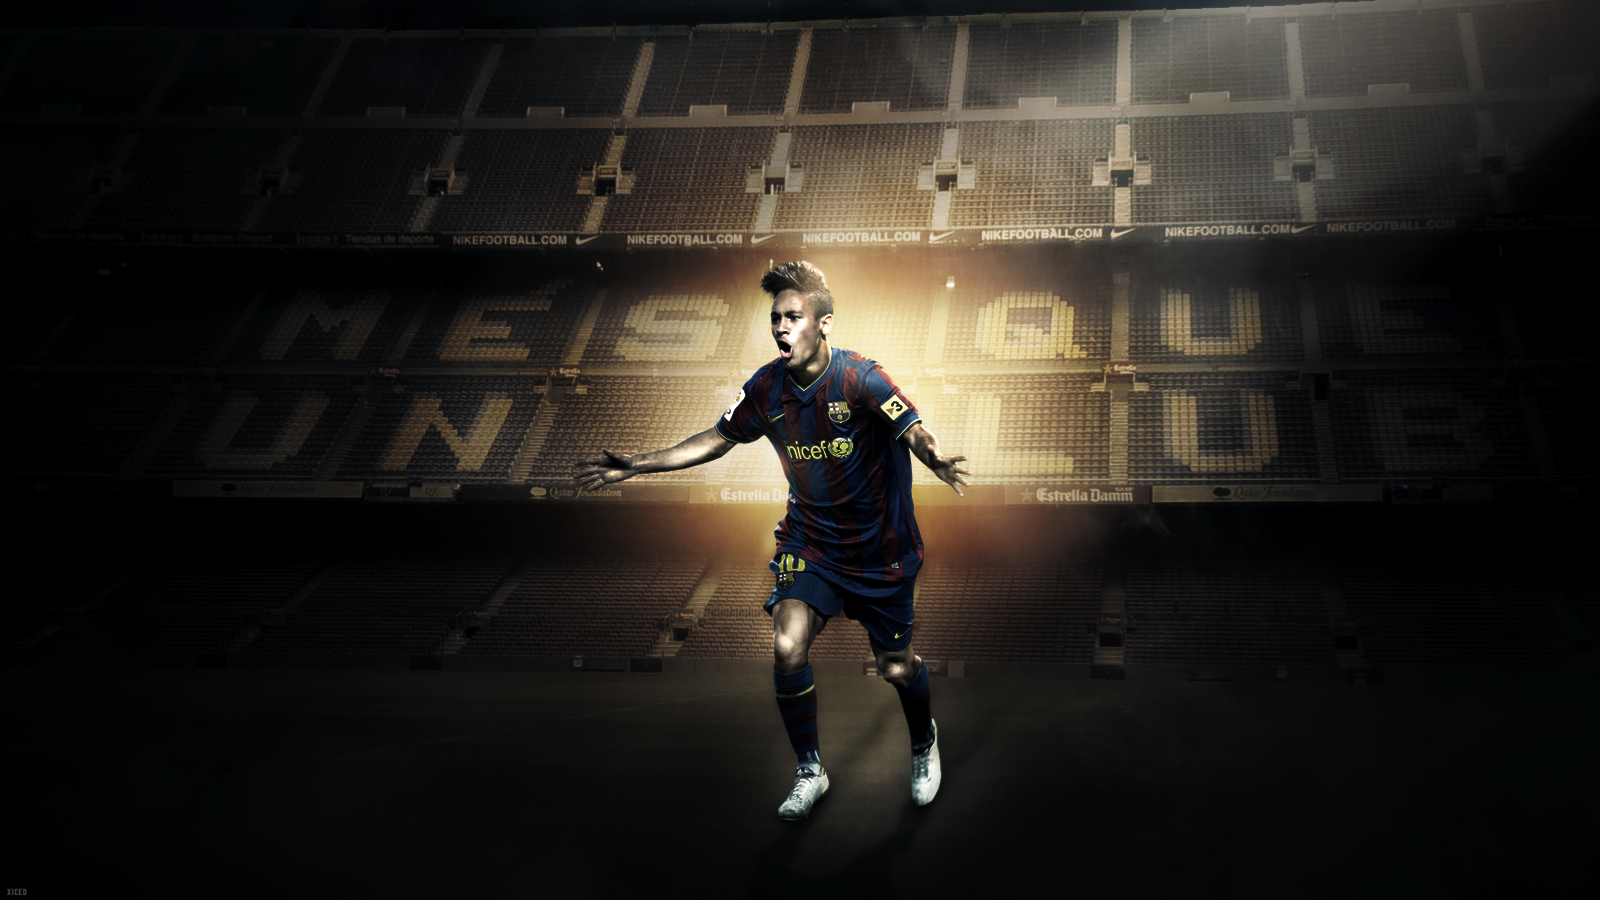 Neymar-Wallpaper-Barcelona-HD